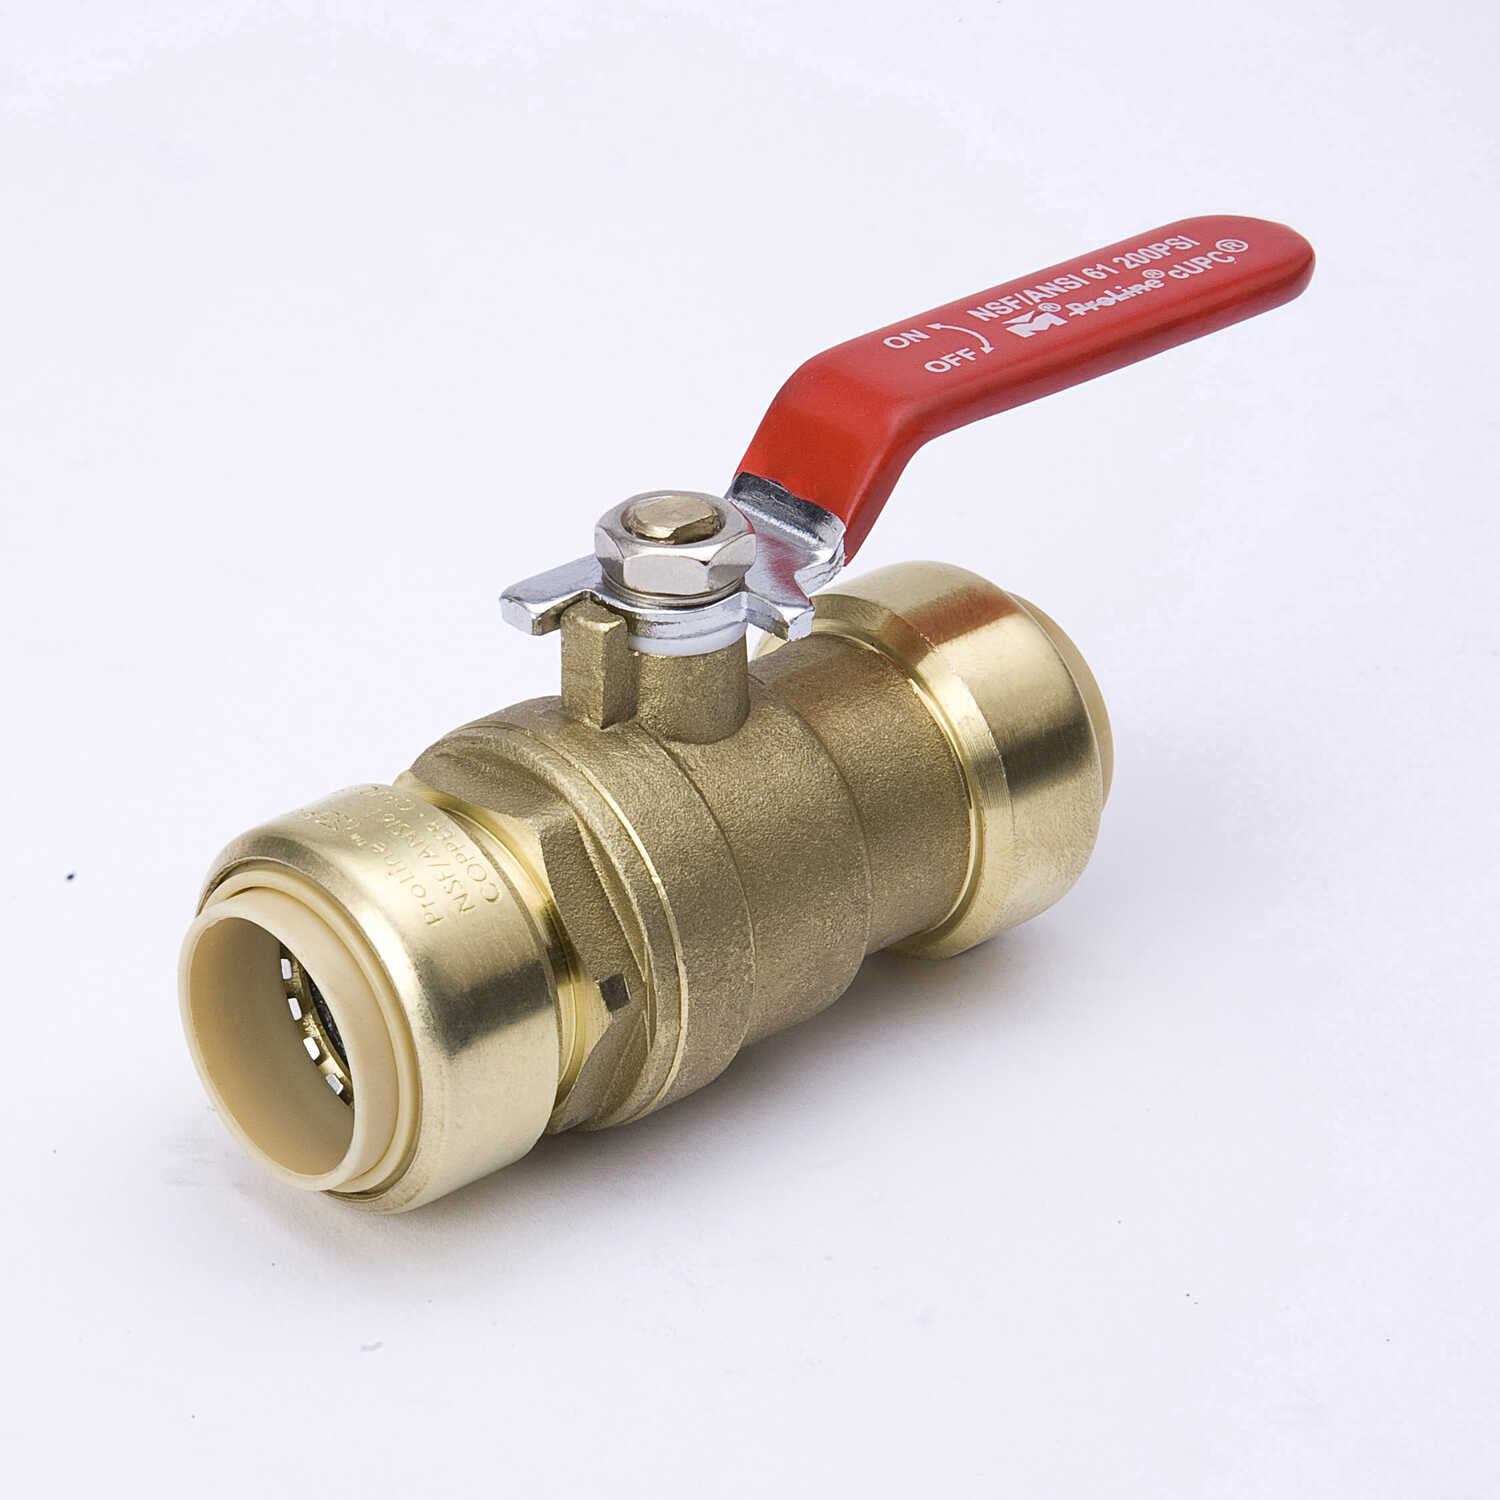 Mueller  Ball Valve  1 in. Push Fit   x 1 in. Dia. Push Fit  Brass  Packing Gland